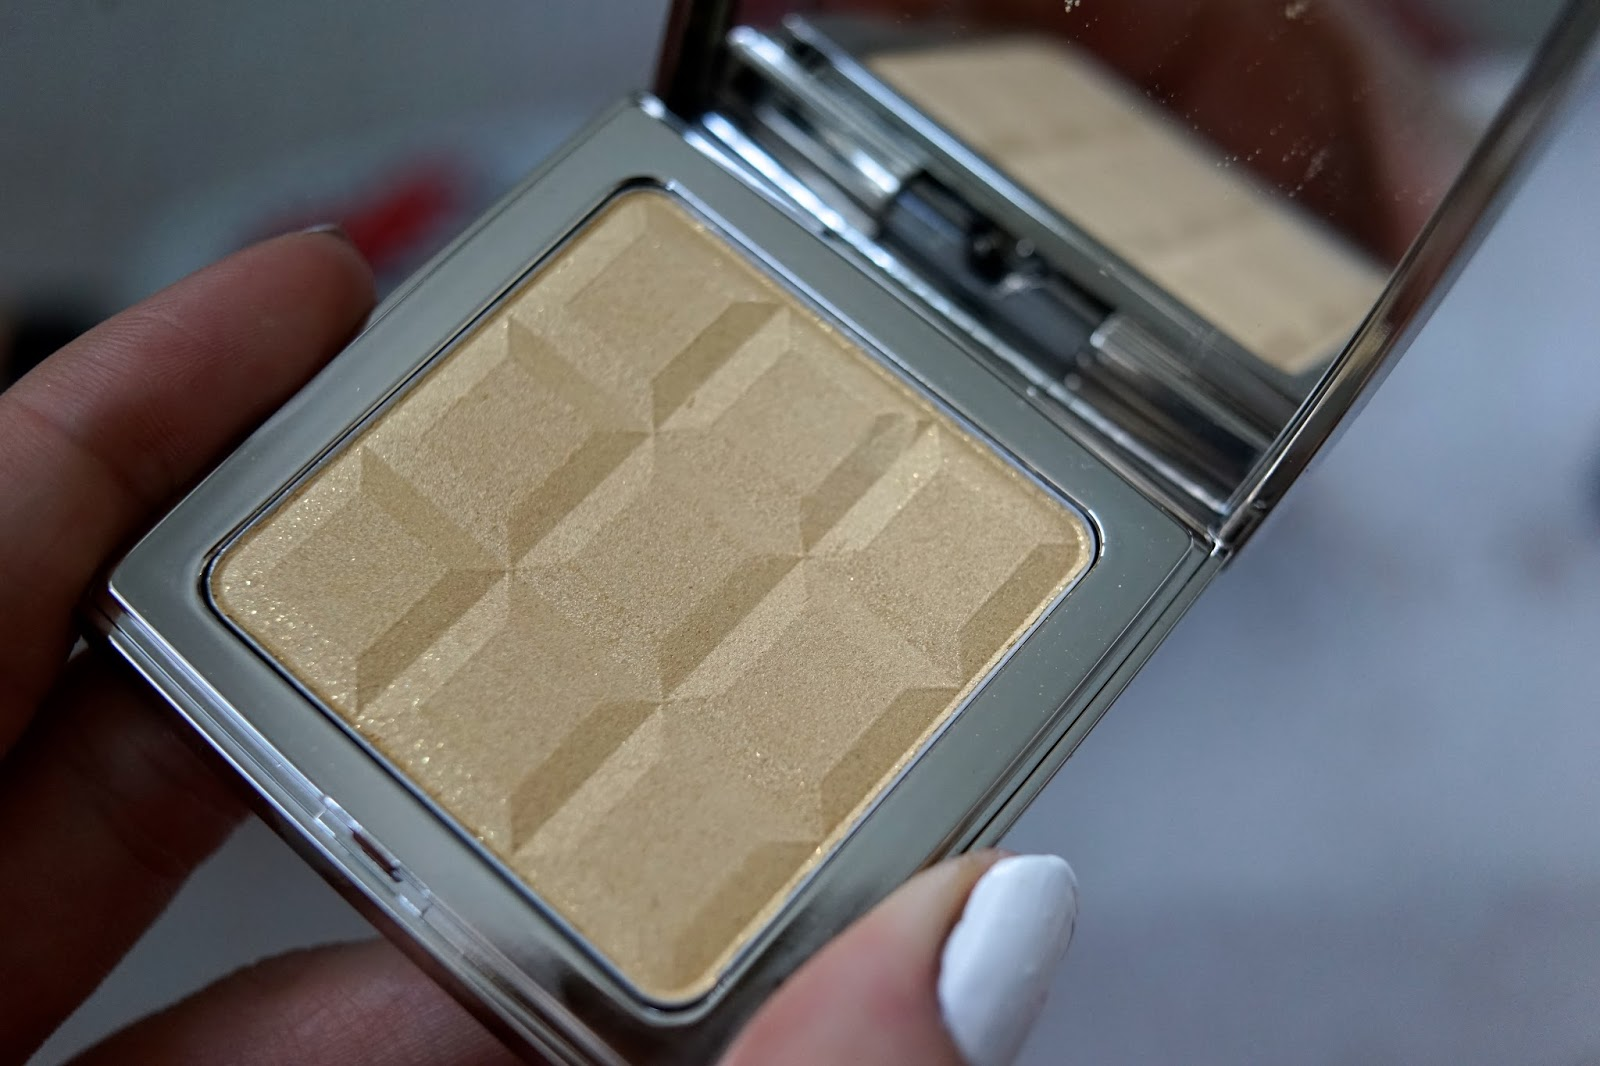 rmk gold impression illuminator